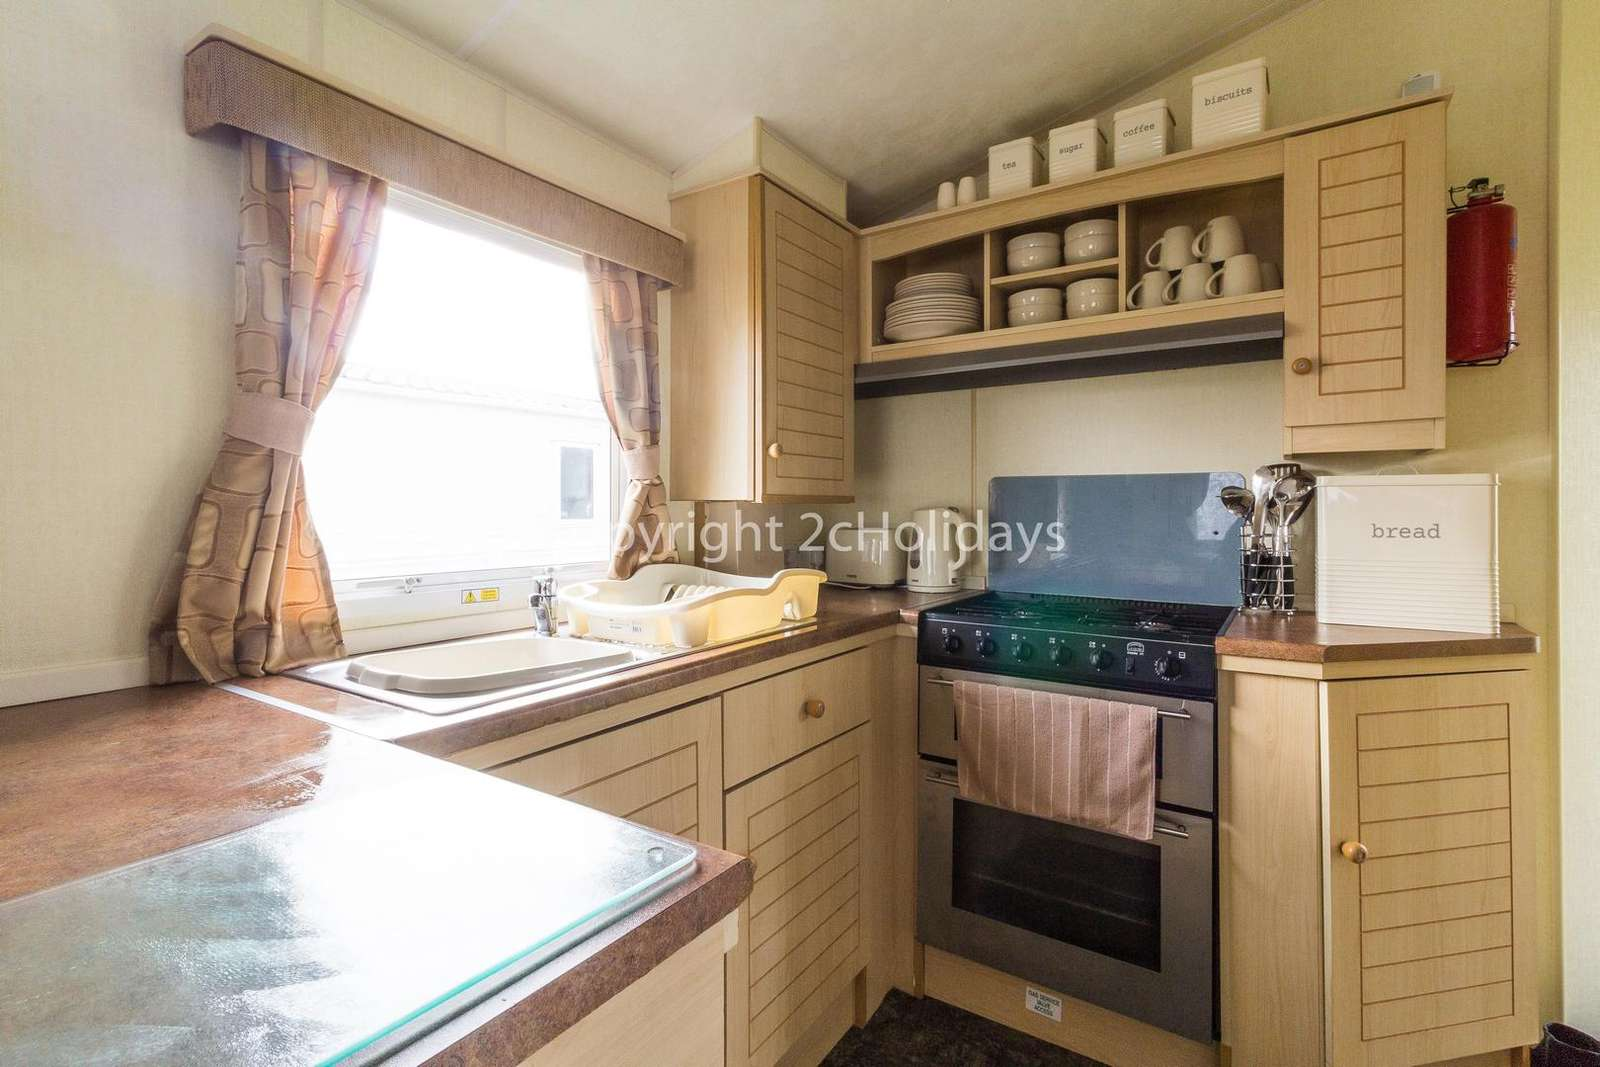 Come and stay in this private accommodation at Cherry Tree Holiday Park